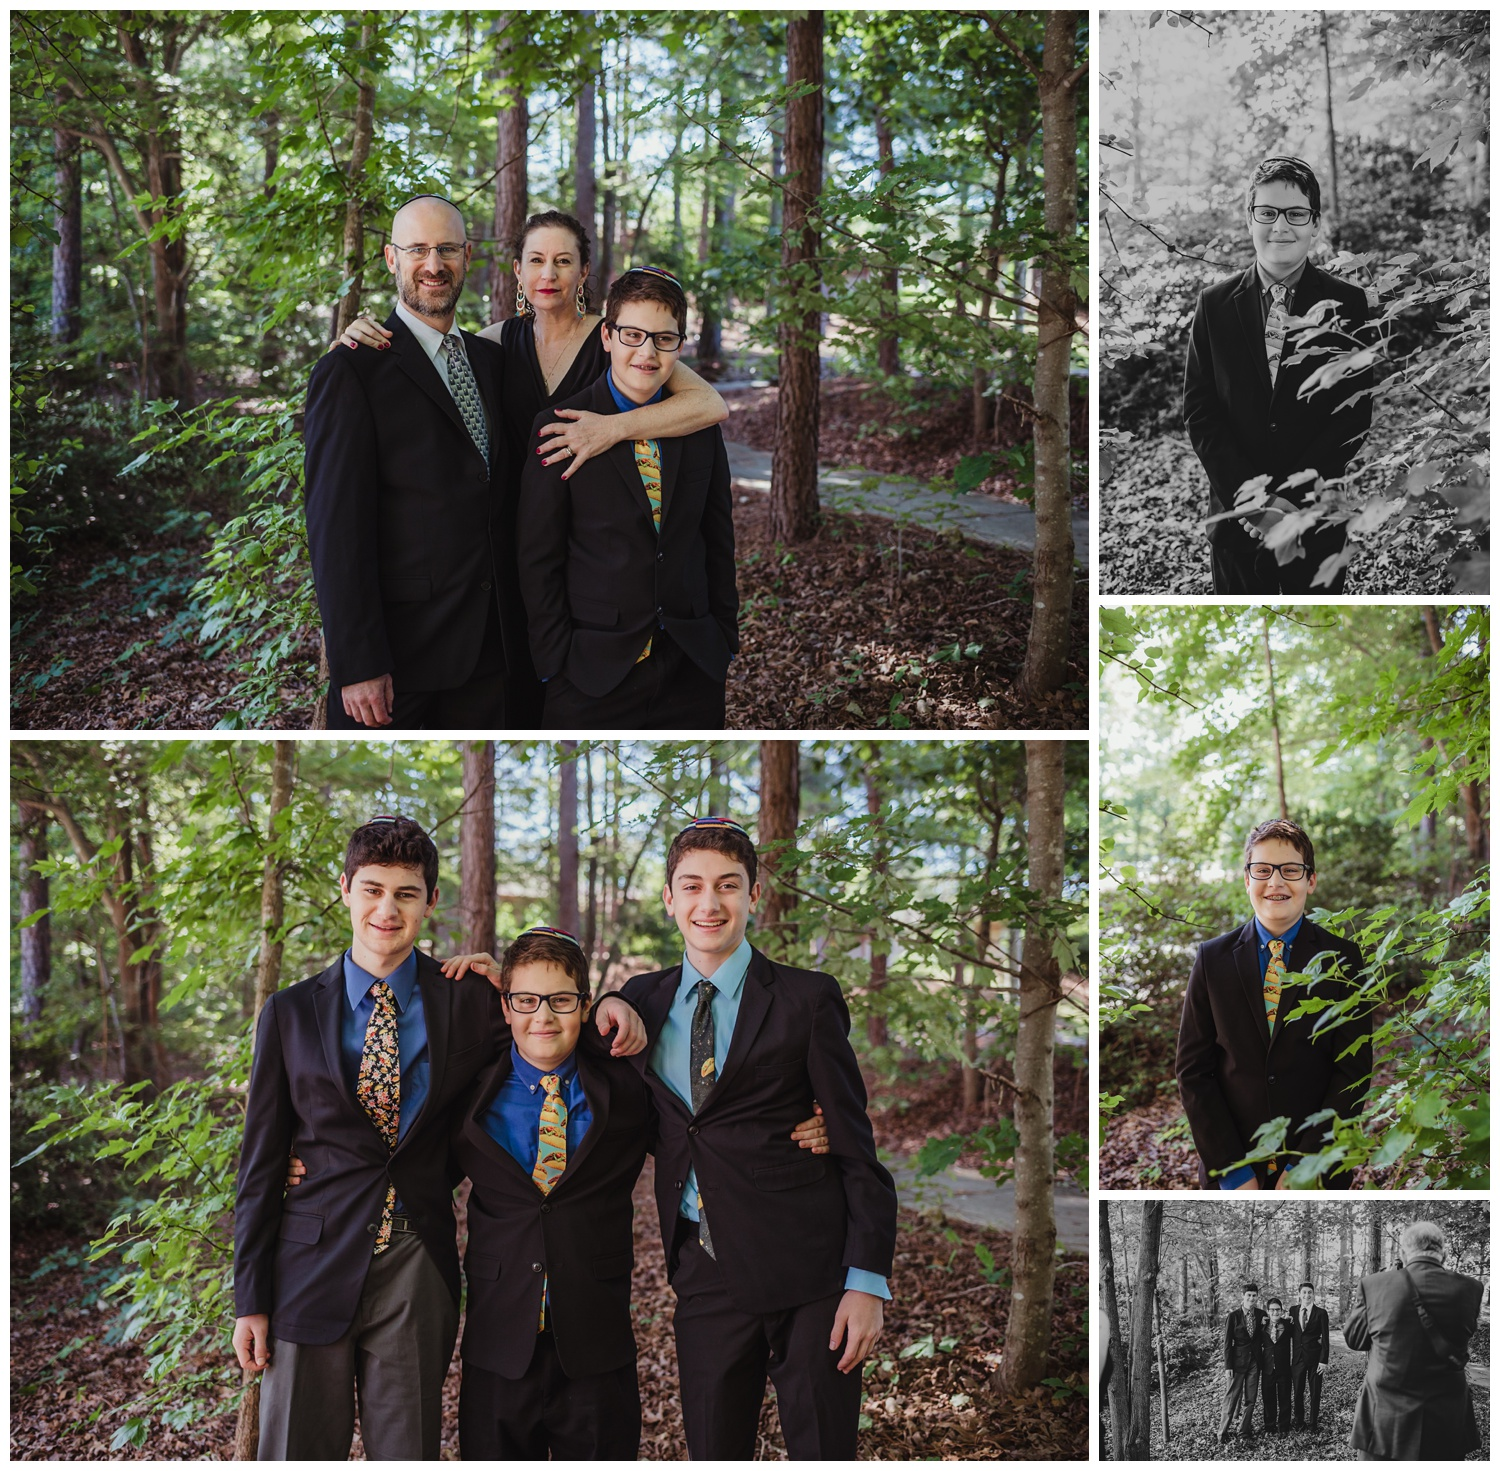 Family and individual portraits outside before the bar mitzvah ceremony at Temple Beth Or in Raleigh, NC, pictures by Rose Trail Images.